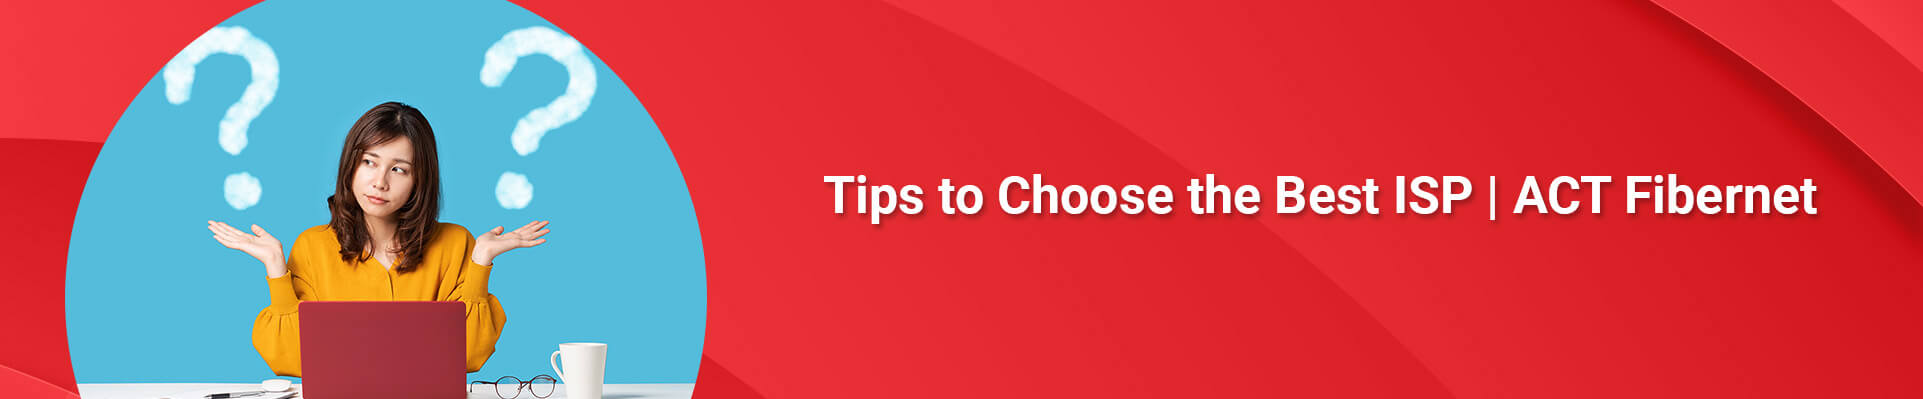 Tips to Choose the Best ISP